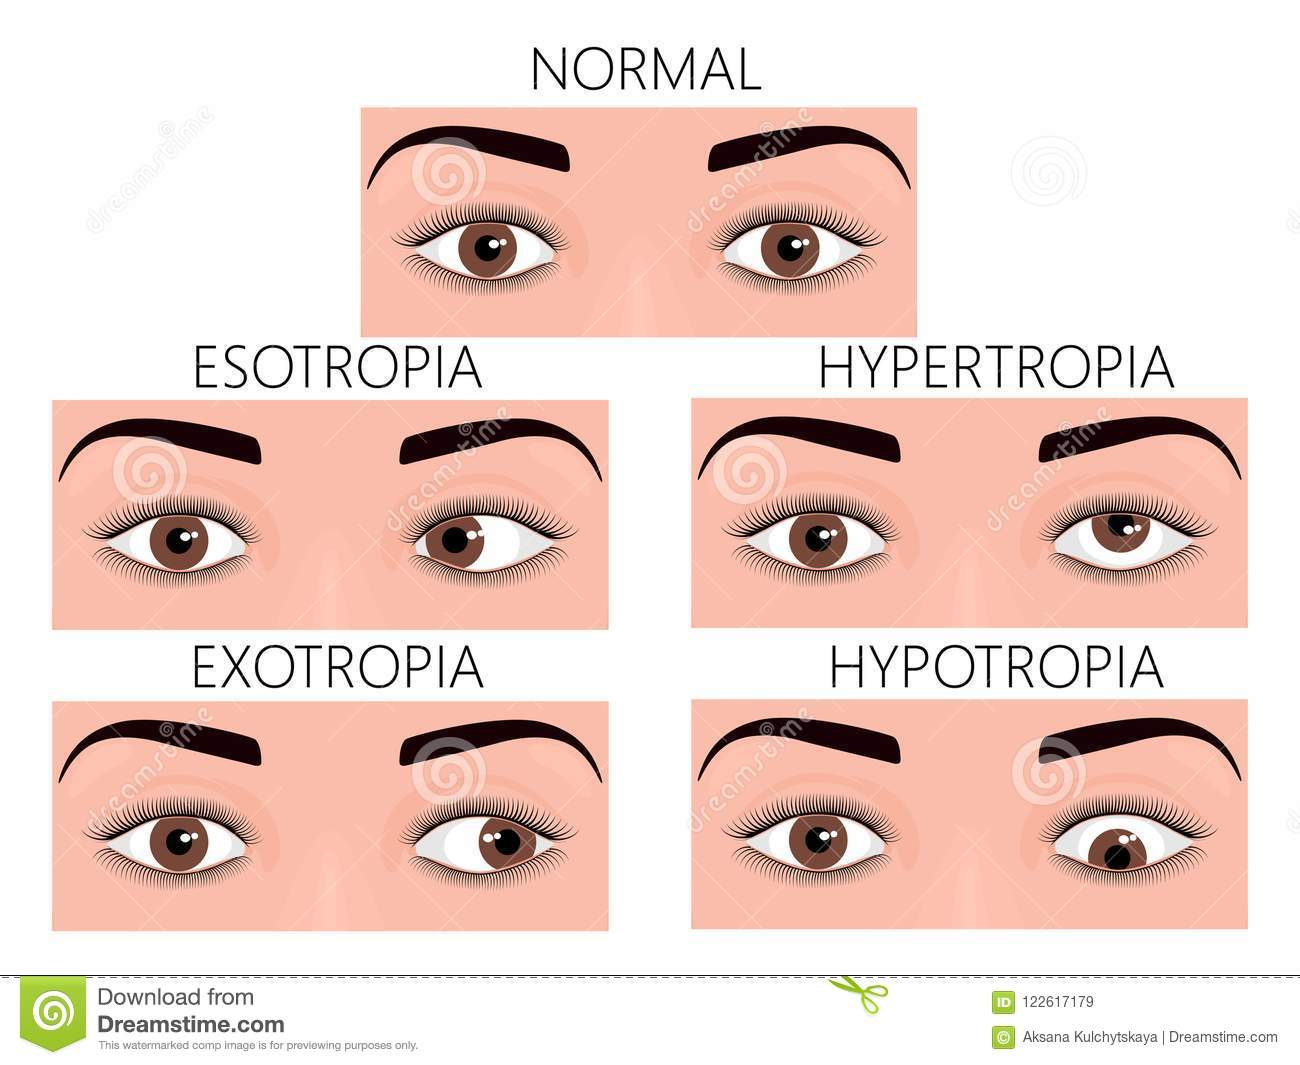 Forum on this topic: Strabismus (Crossed Eyes), strabismus-crossed-eyes/